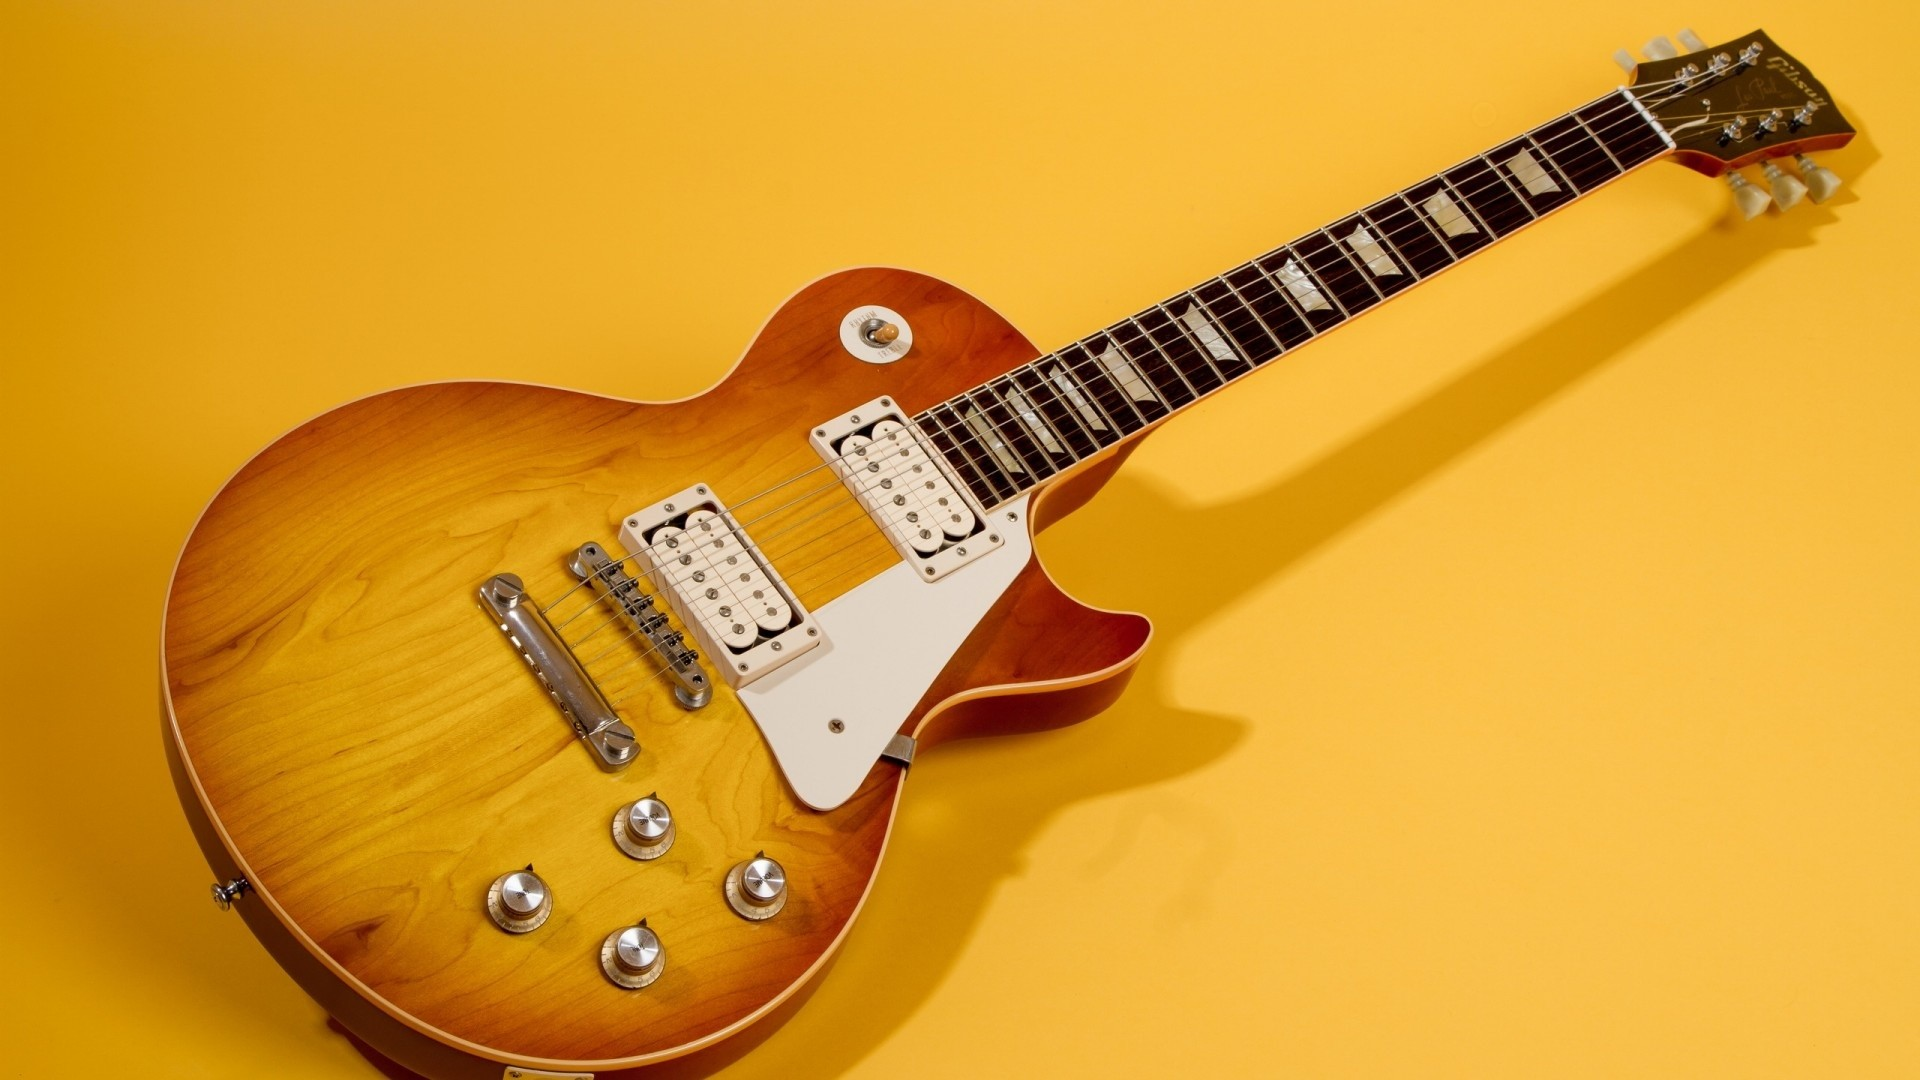 Gibson Guitar Wallpaper HD 54 images